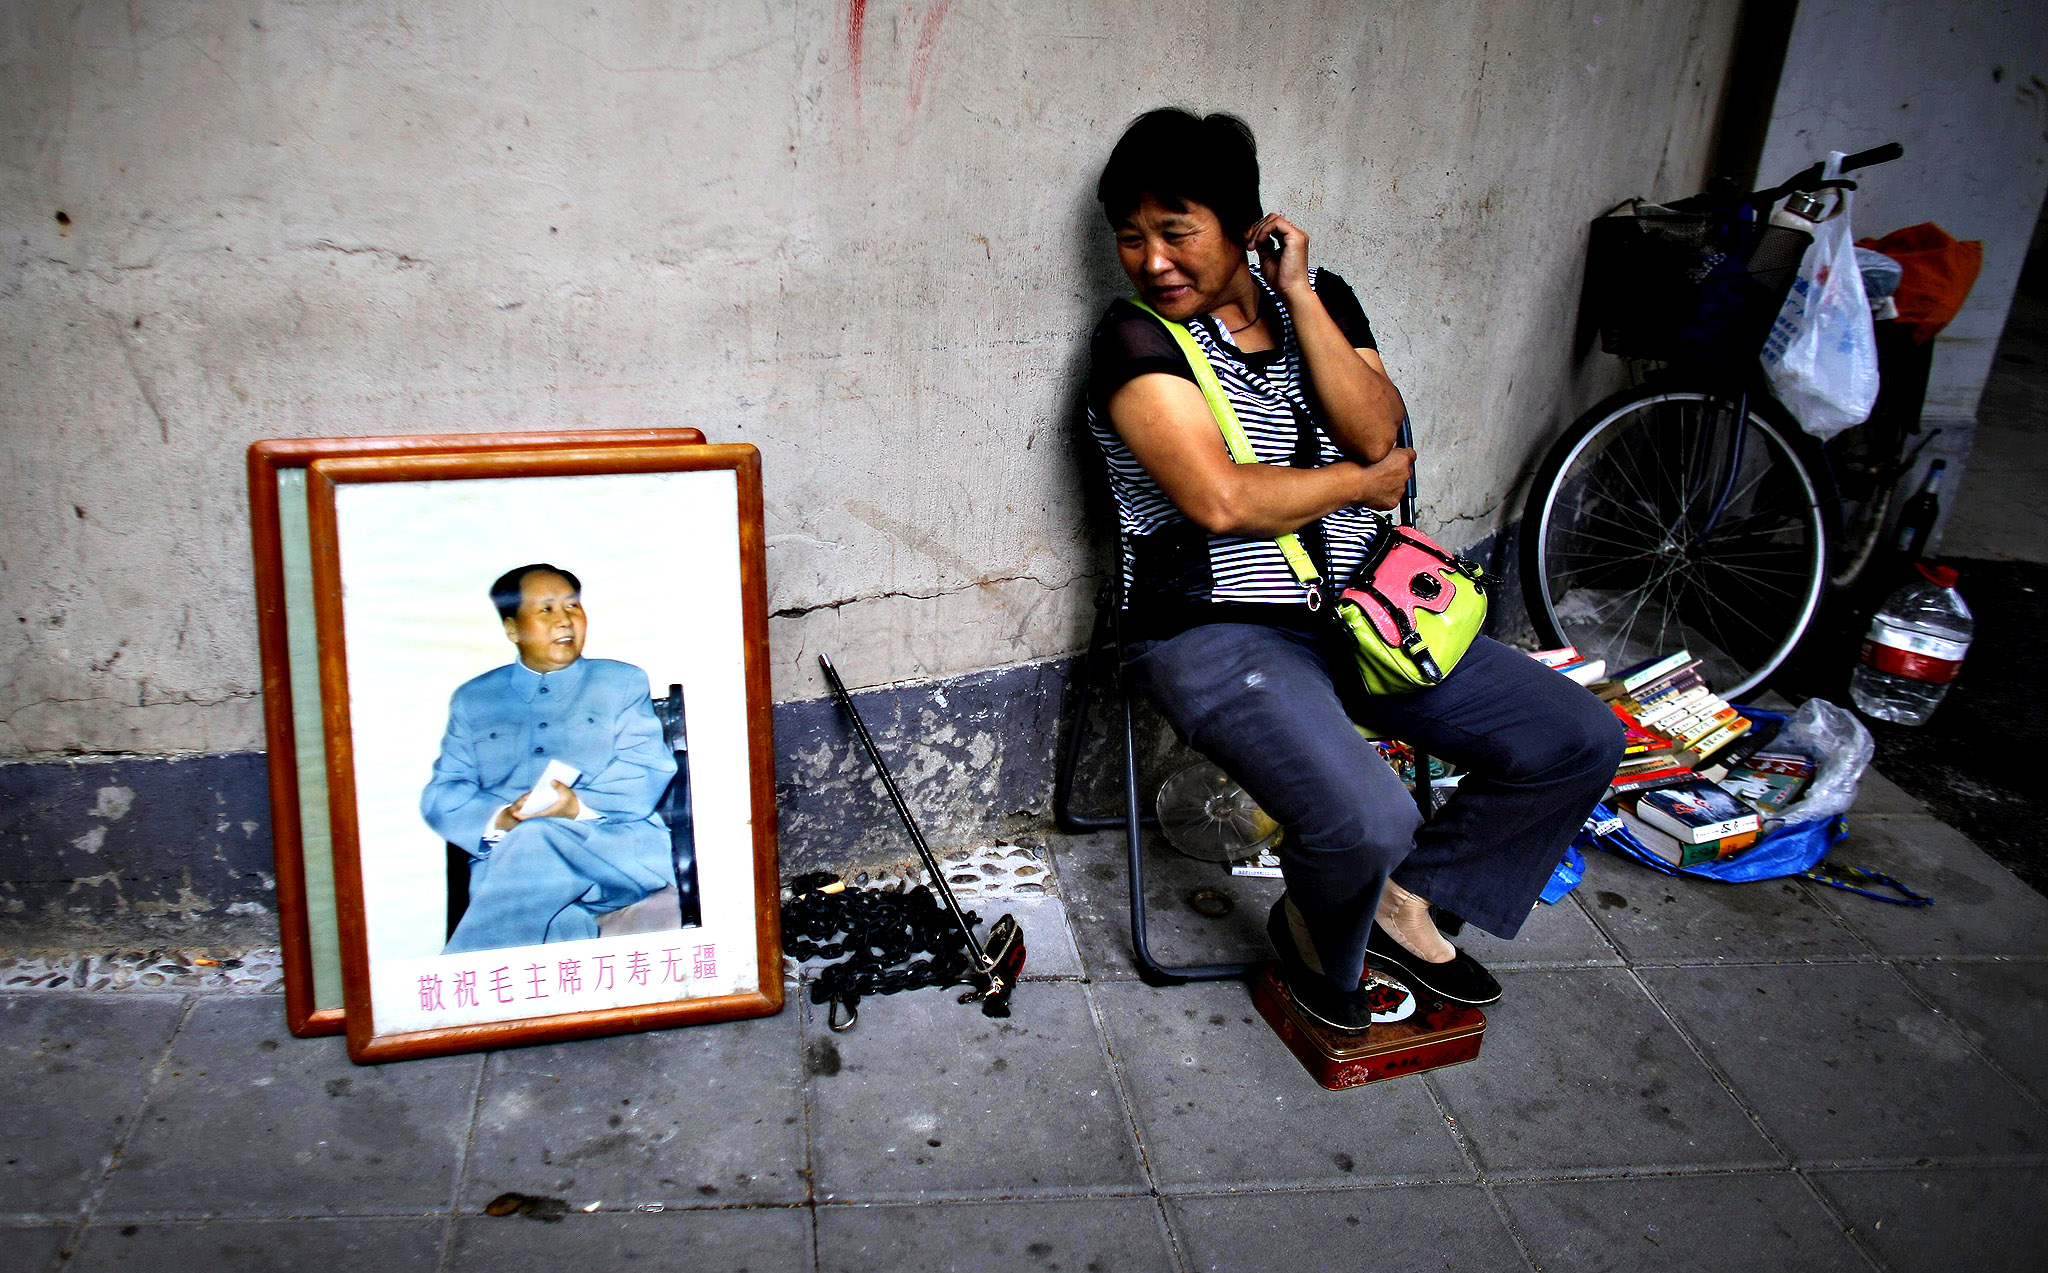 A woman sells a portrait of China's late chairman Mao Zedong at a busy street in Shanghai September 12, 2014.